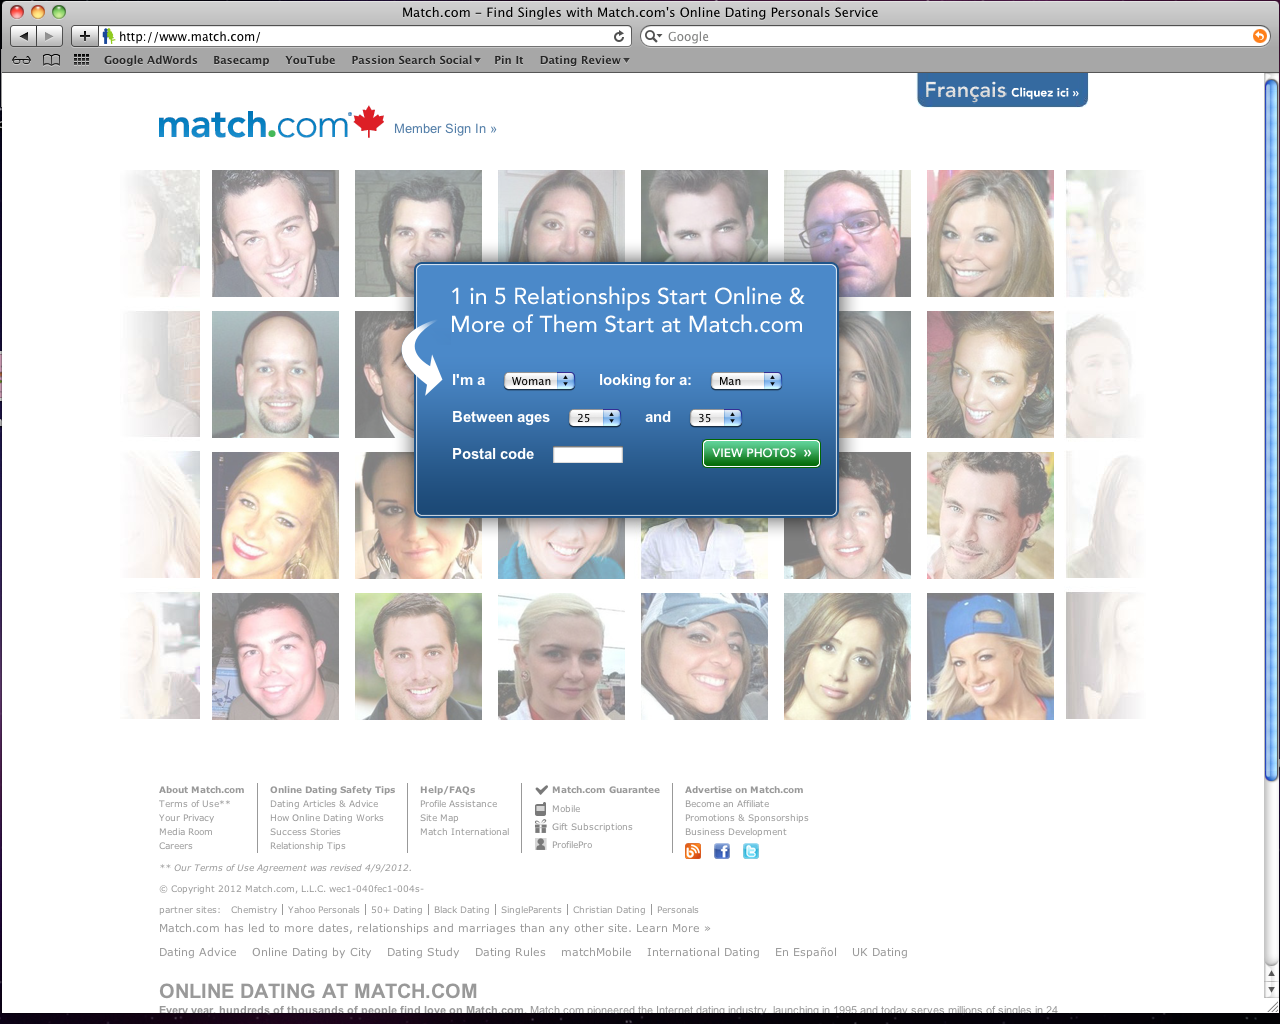 Over 100 Online Dating First Message Examples to Pick & Choose